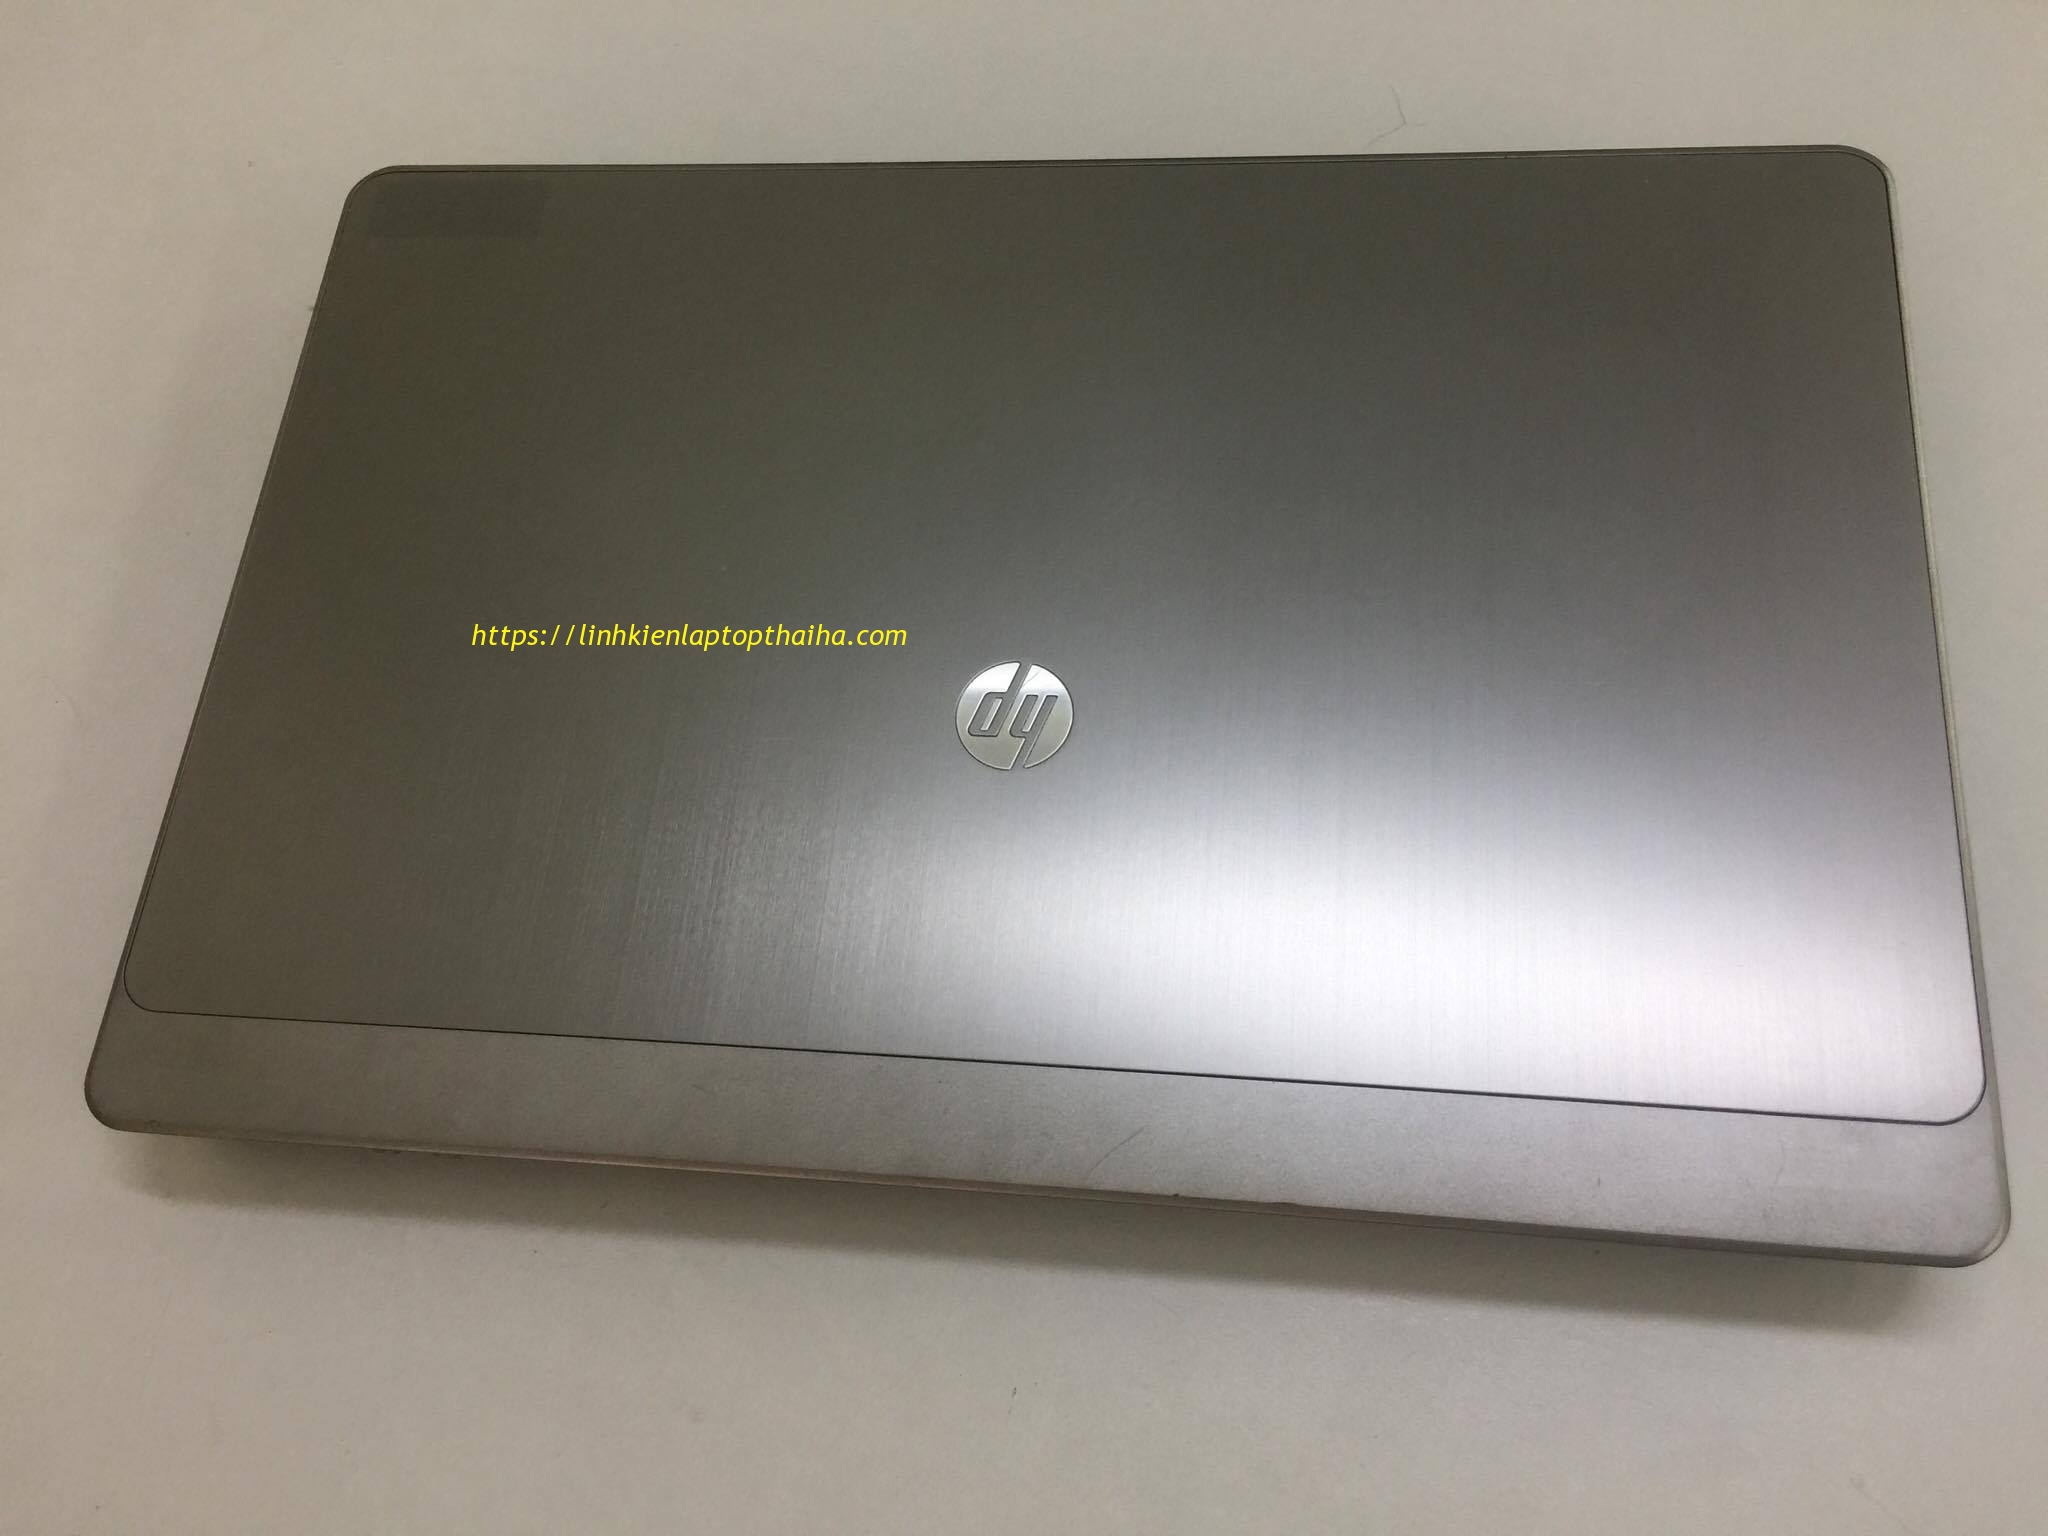 Laptop Hp Probook 4530s i5 2410M | RAM 4G | HDD 250G | 15.6'' HD